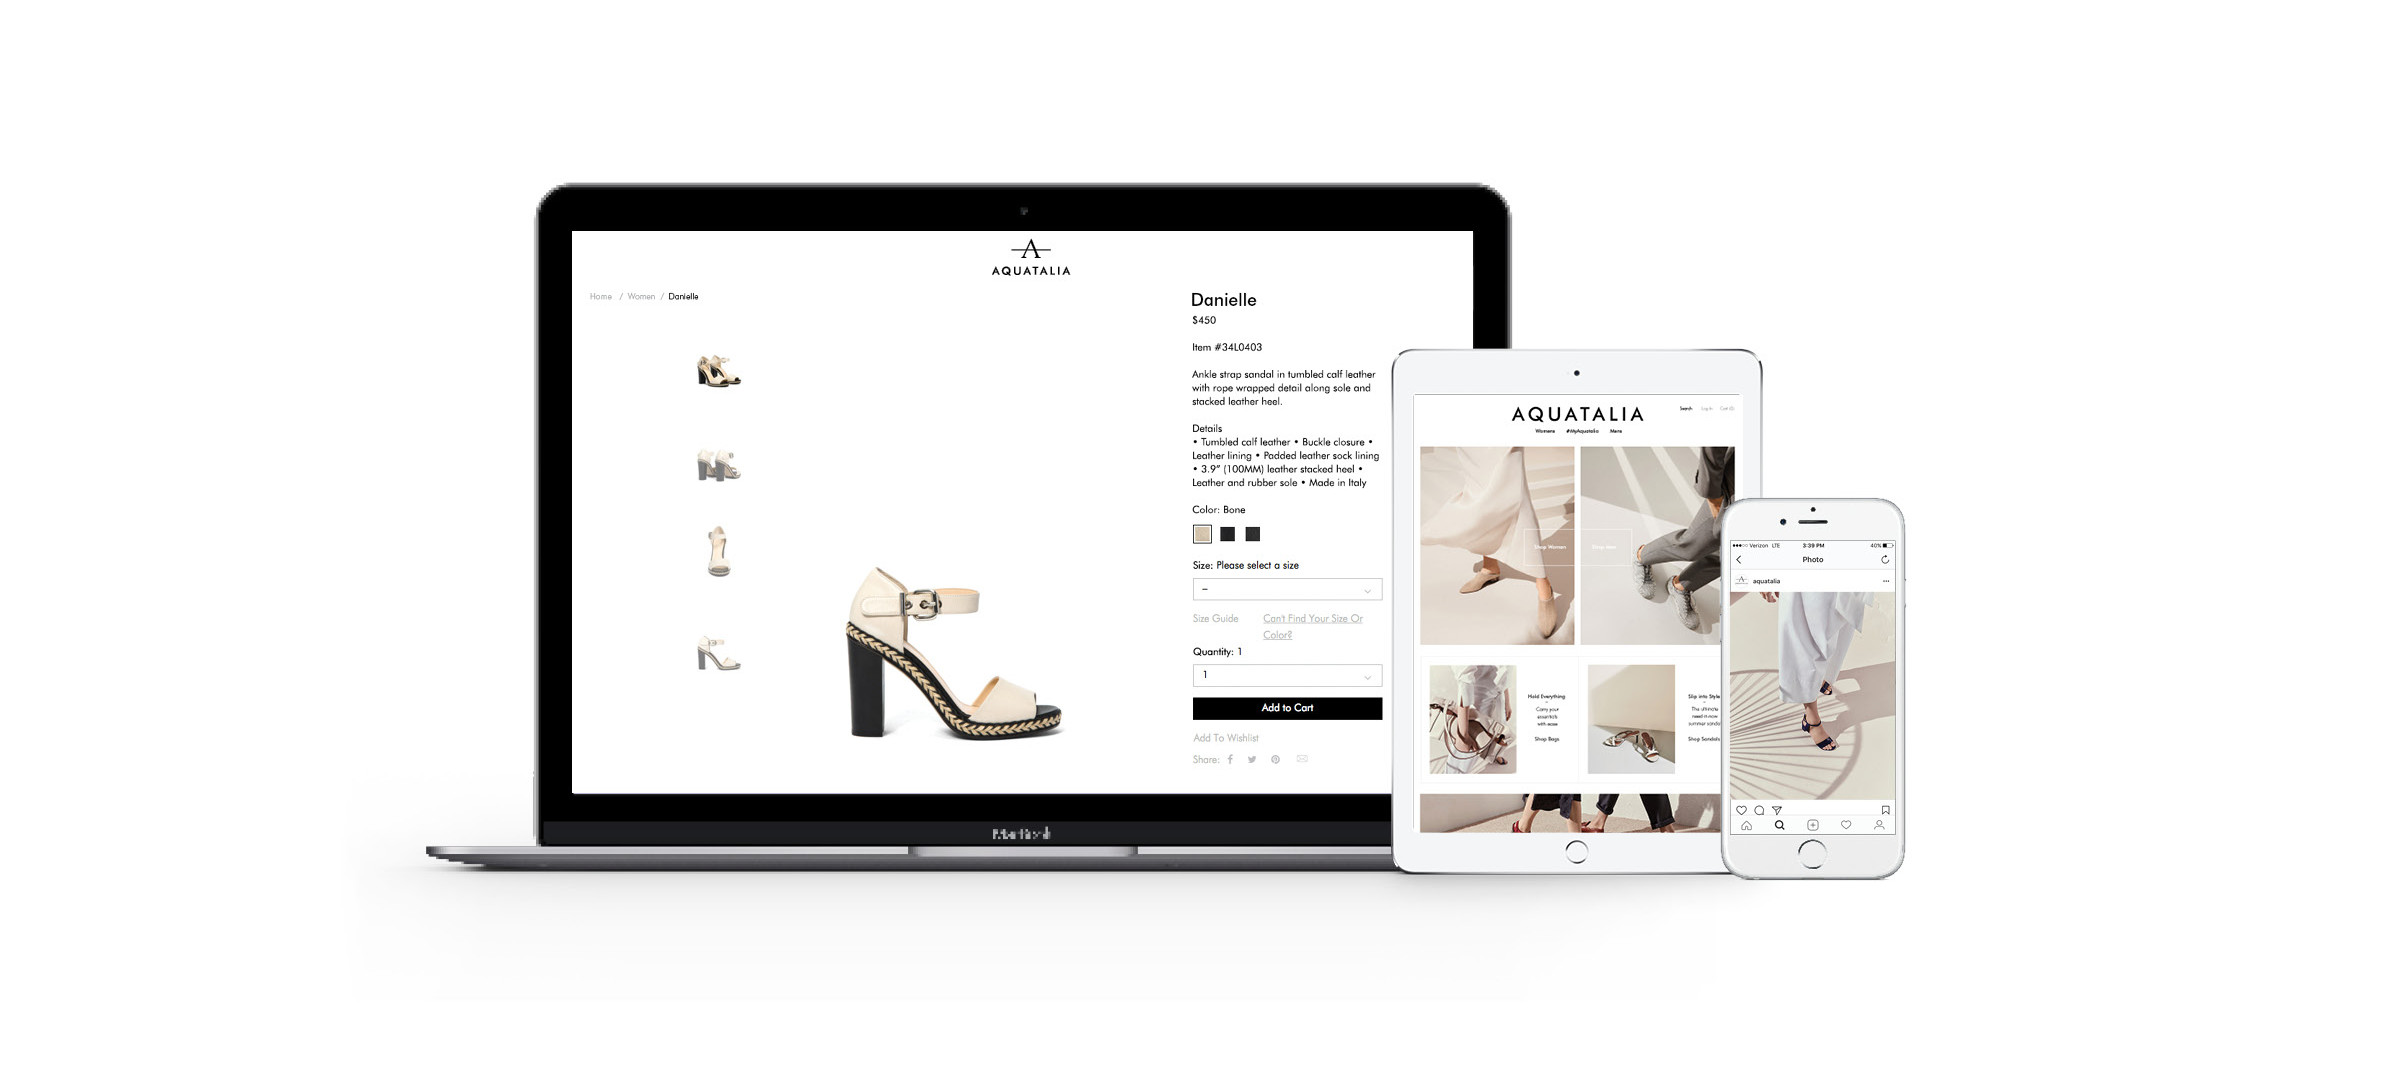 Aquatalia online shopping experience curated and shot by DTE Studio